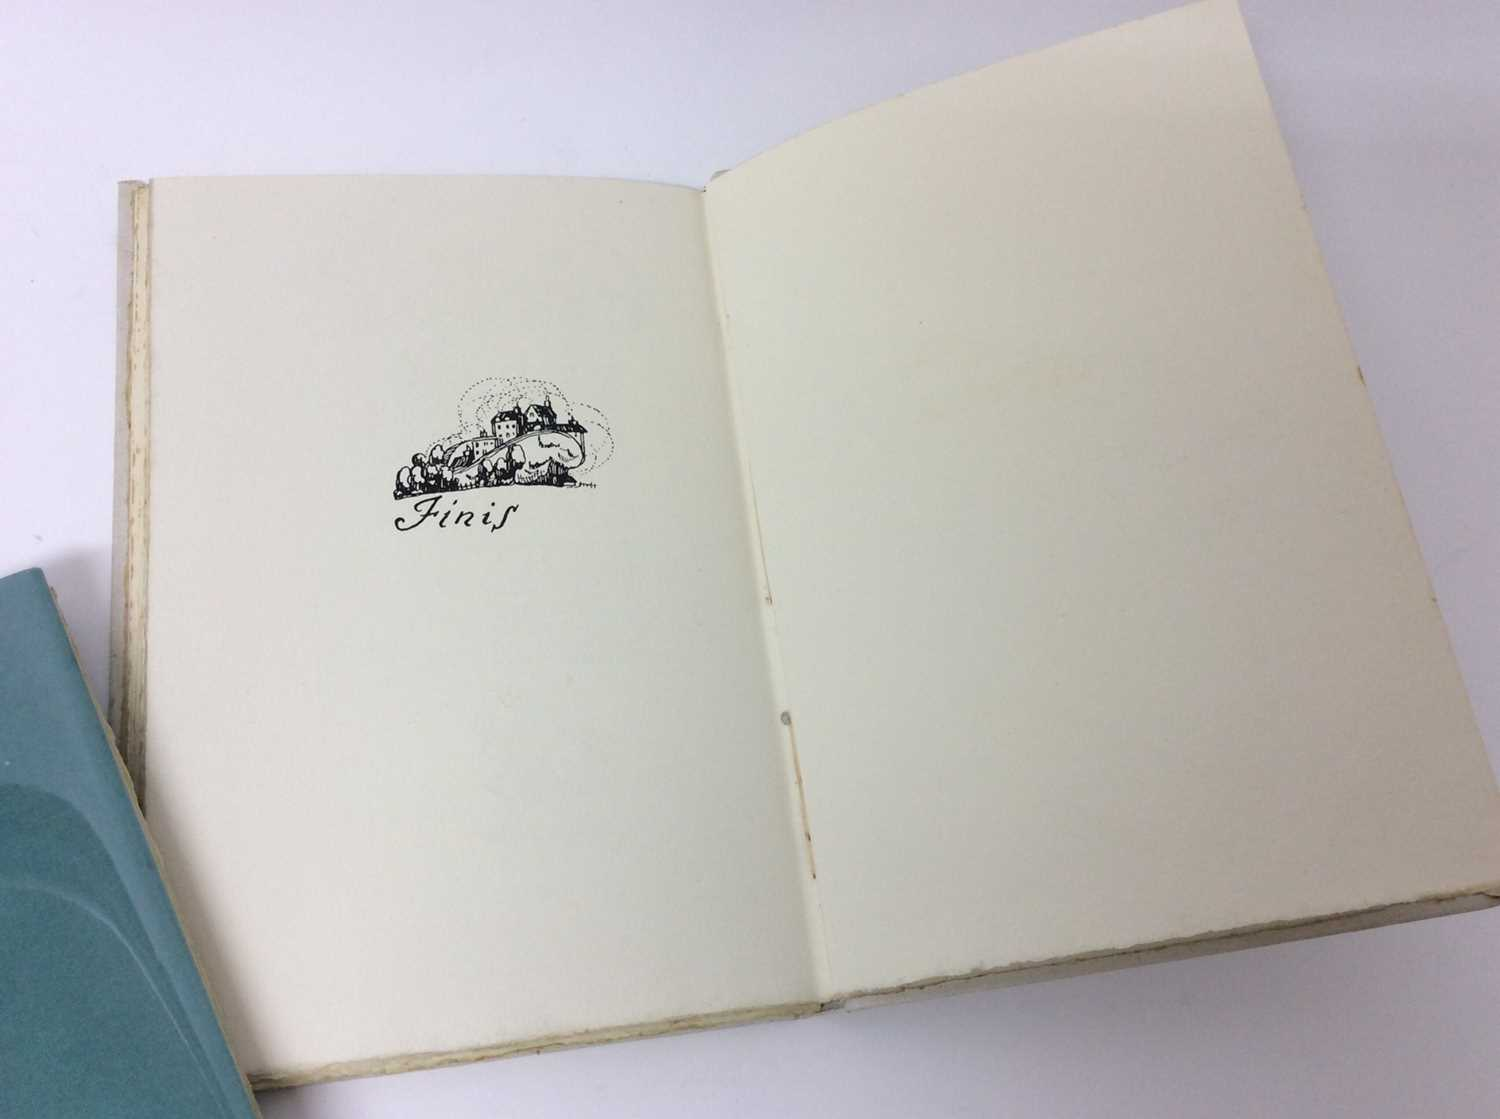 Evelyn Ansell - Twenty Five Poems, also Poems from the Works of Charles Cotton, illustrated by Claud - Image 13 of 13